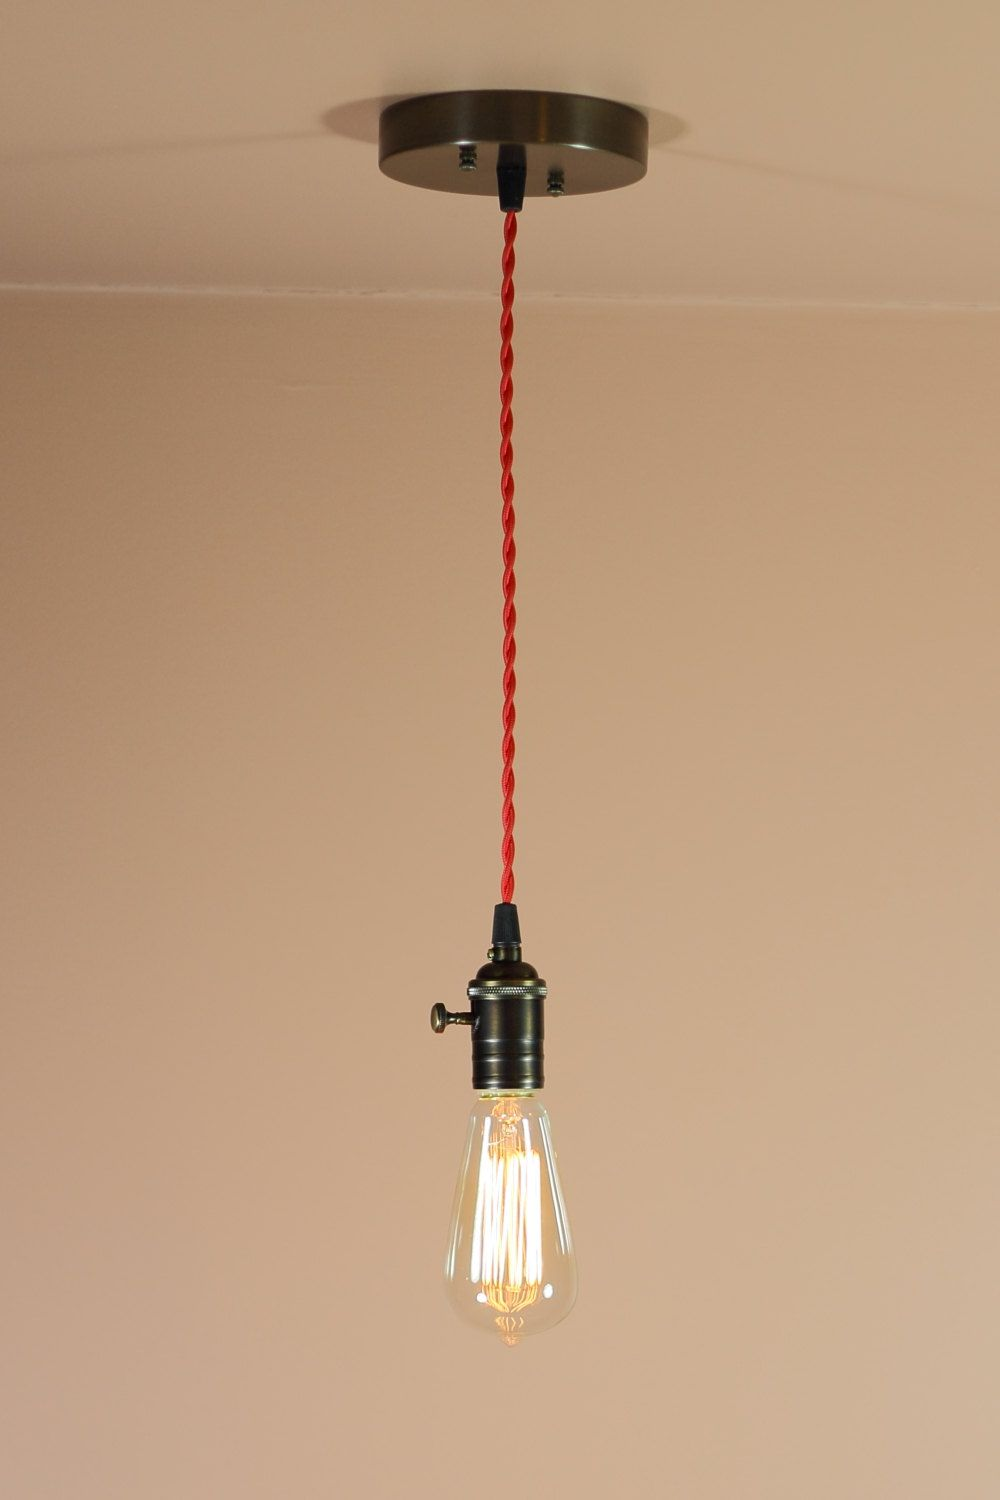 bare bulb lighting. Bare Bulb Pendant Light - Red Or Brown Twisted Wire Oil Rubbed Bronze Finish Edison Bulb. $88.00, Via Etsy. CHANGE THE CORD Lighting